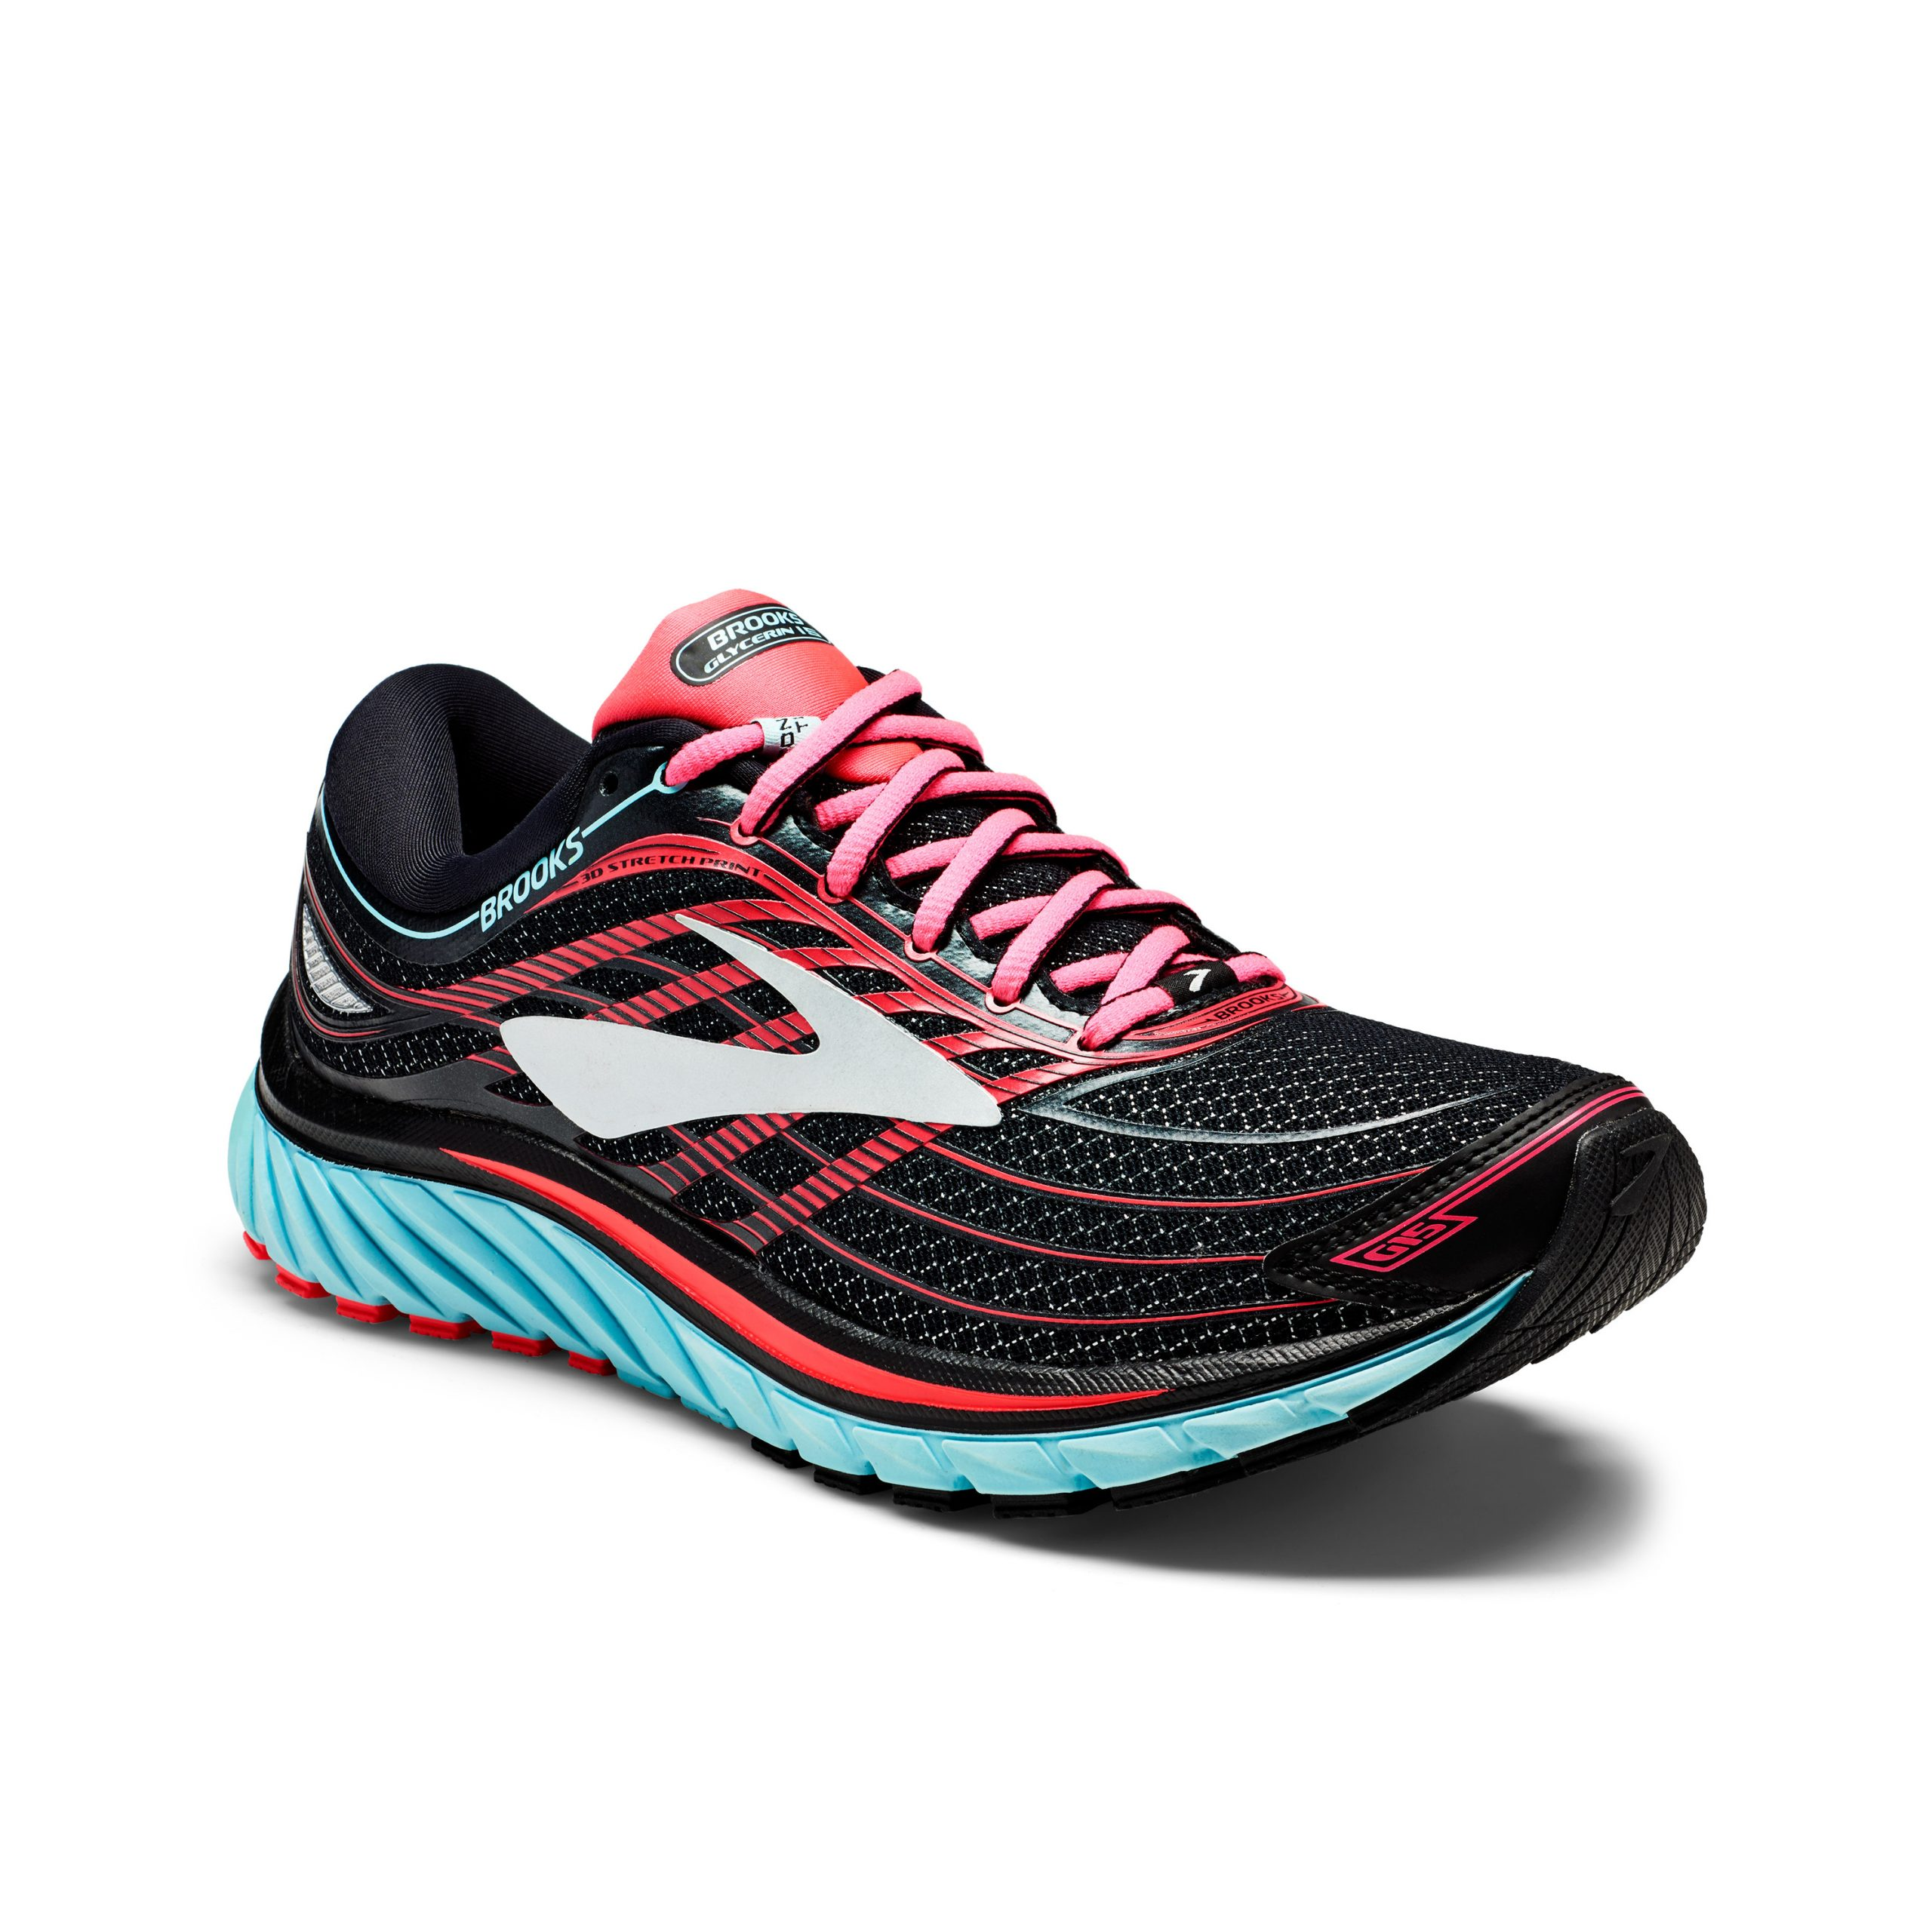 GLYCERIN 15 - Brooks Running Shoes